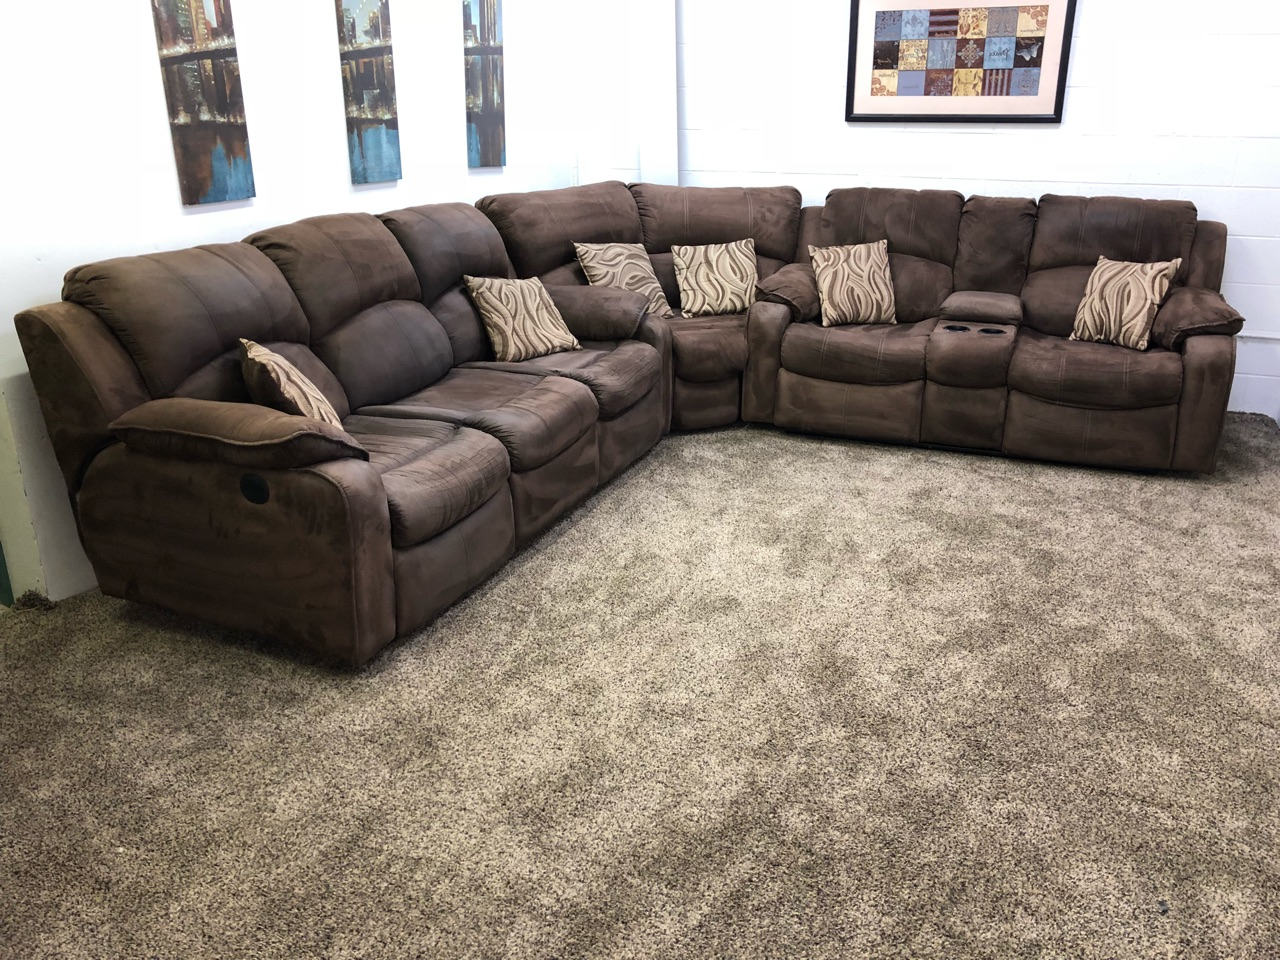 Most Recent (Reserved) #1260 3 Piece Dark Brown Microfiber Power Throughout Raven Power Reclining Sofas (View 5 of 15)